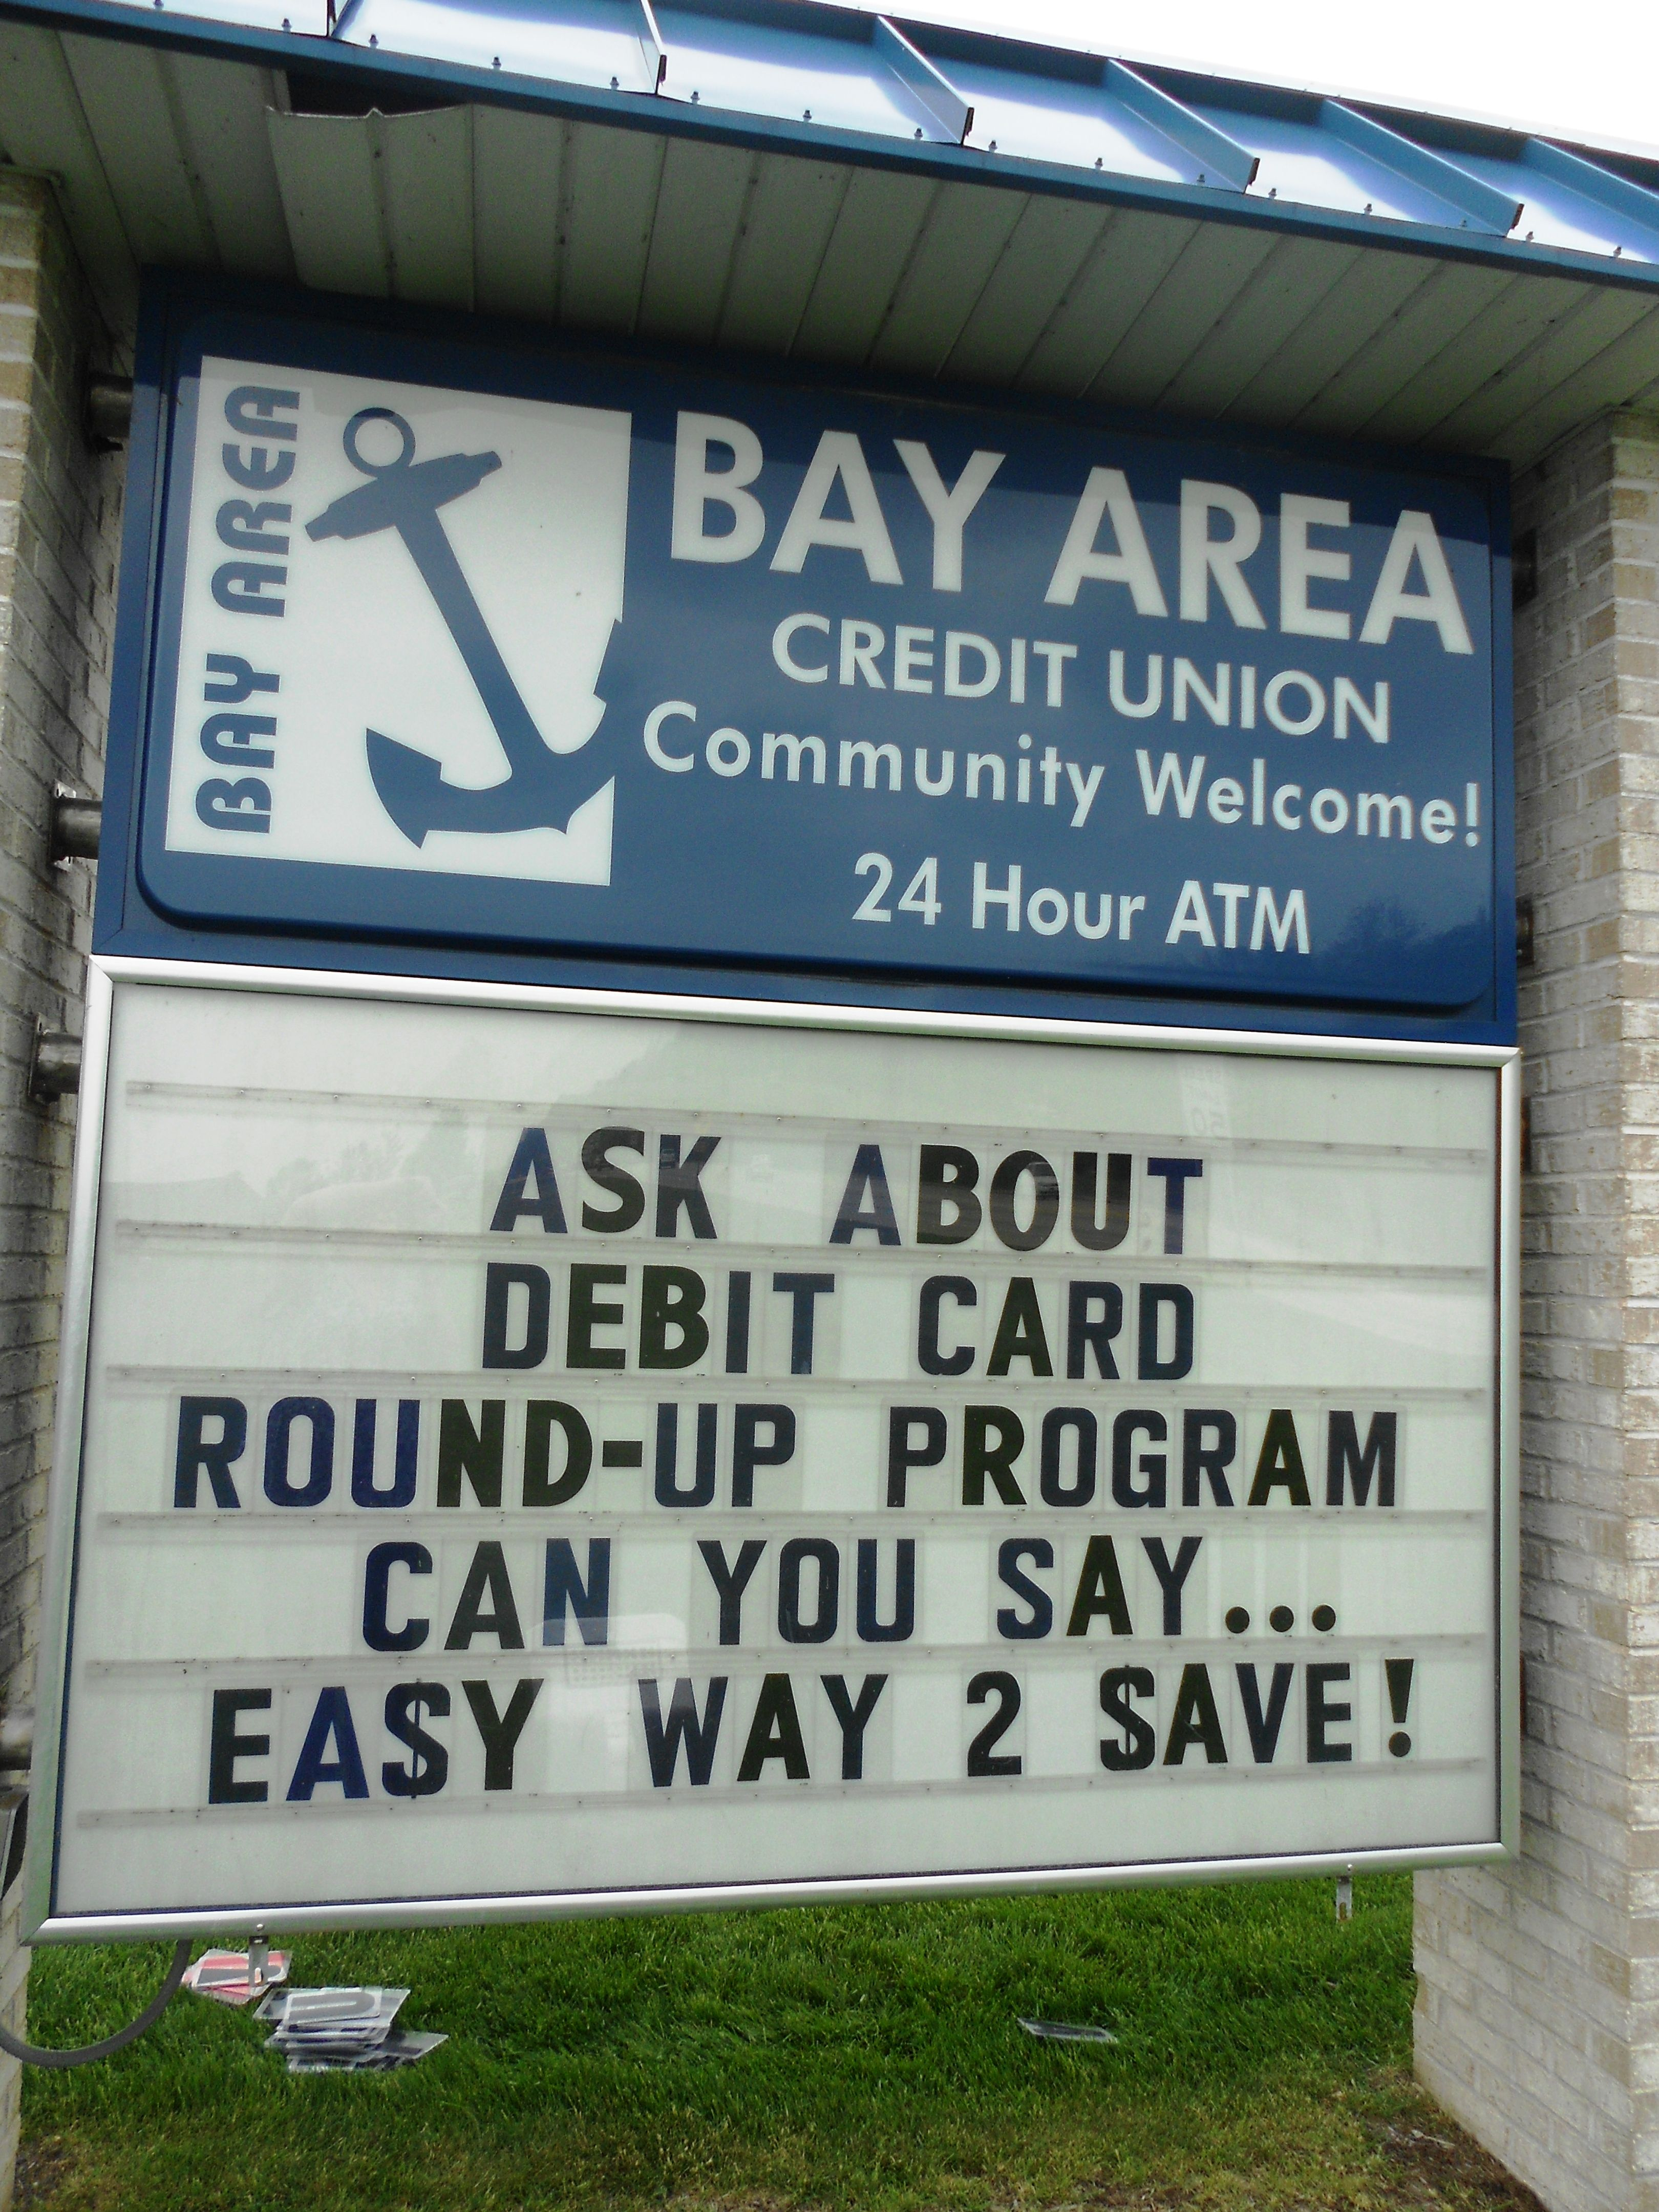 Every time you use your debit card you can save money